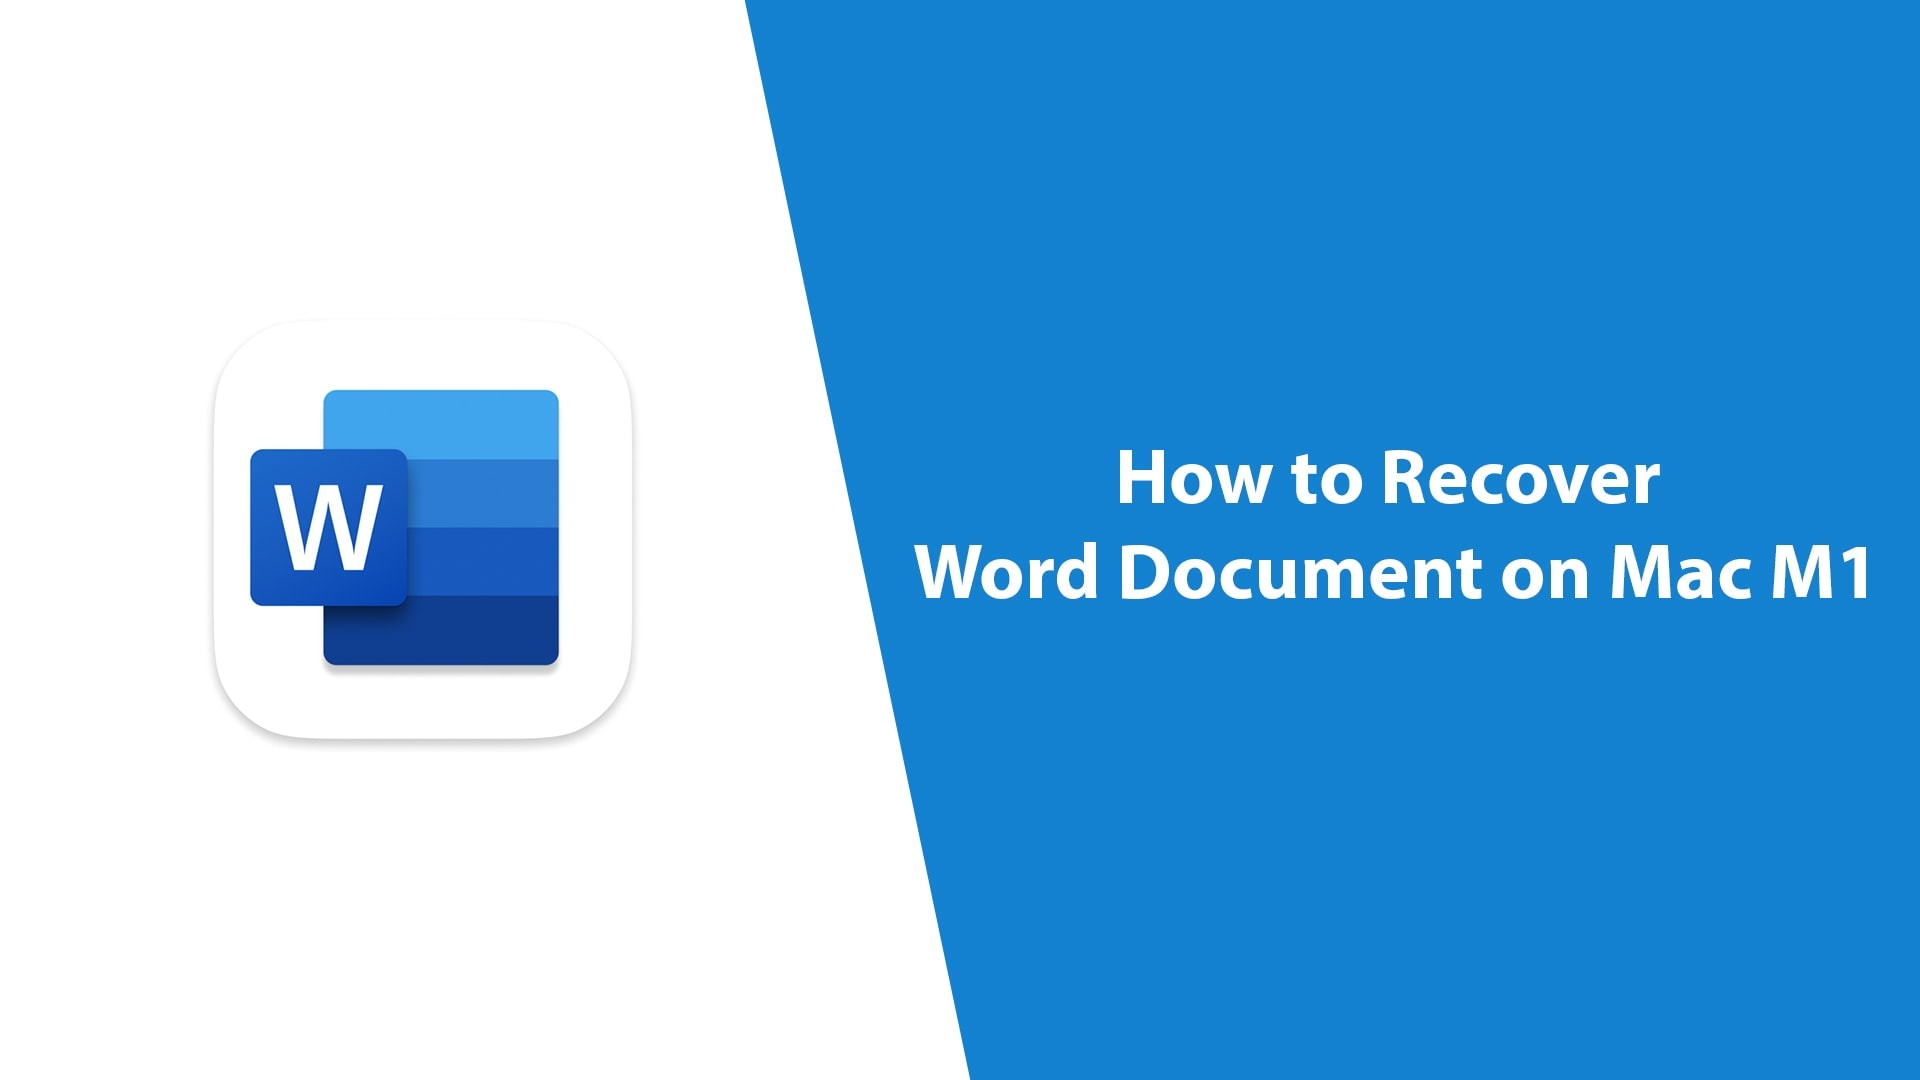 How to Recover Word Document on Mac M1